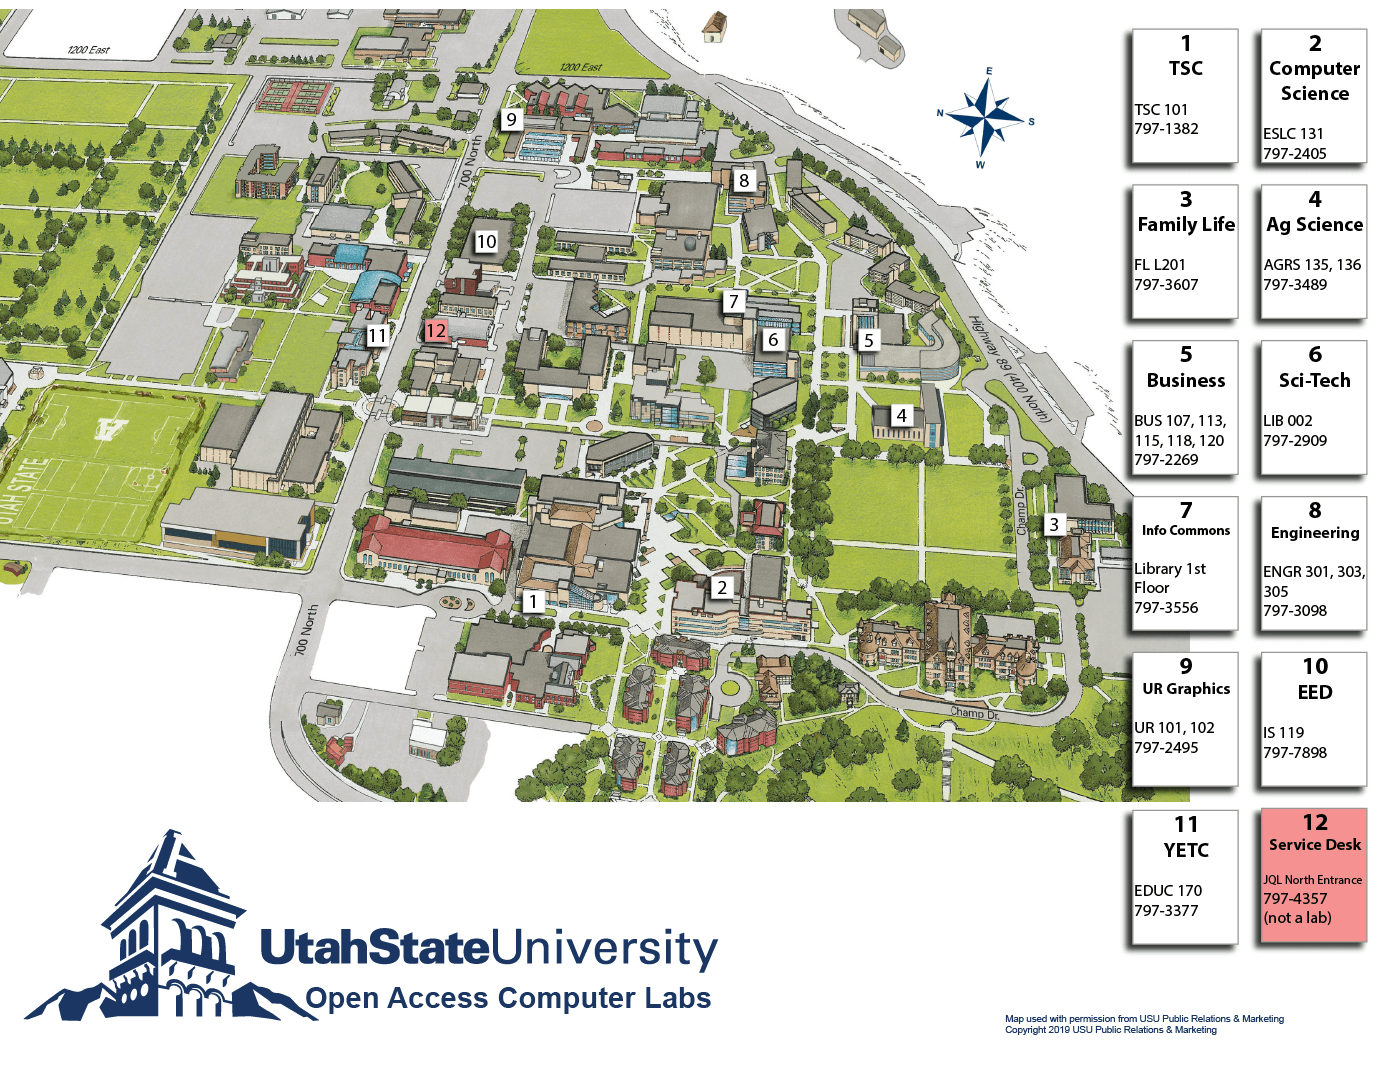 map of USU computer labs